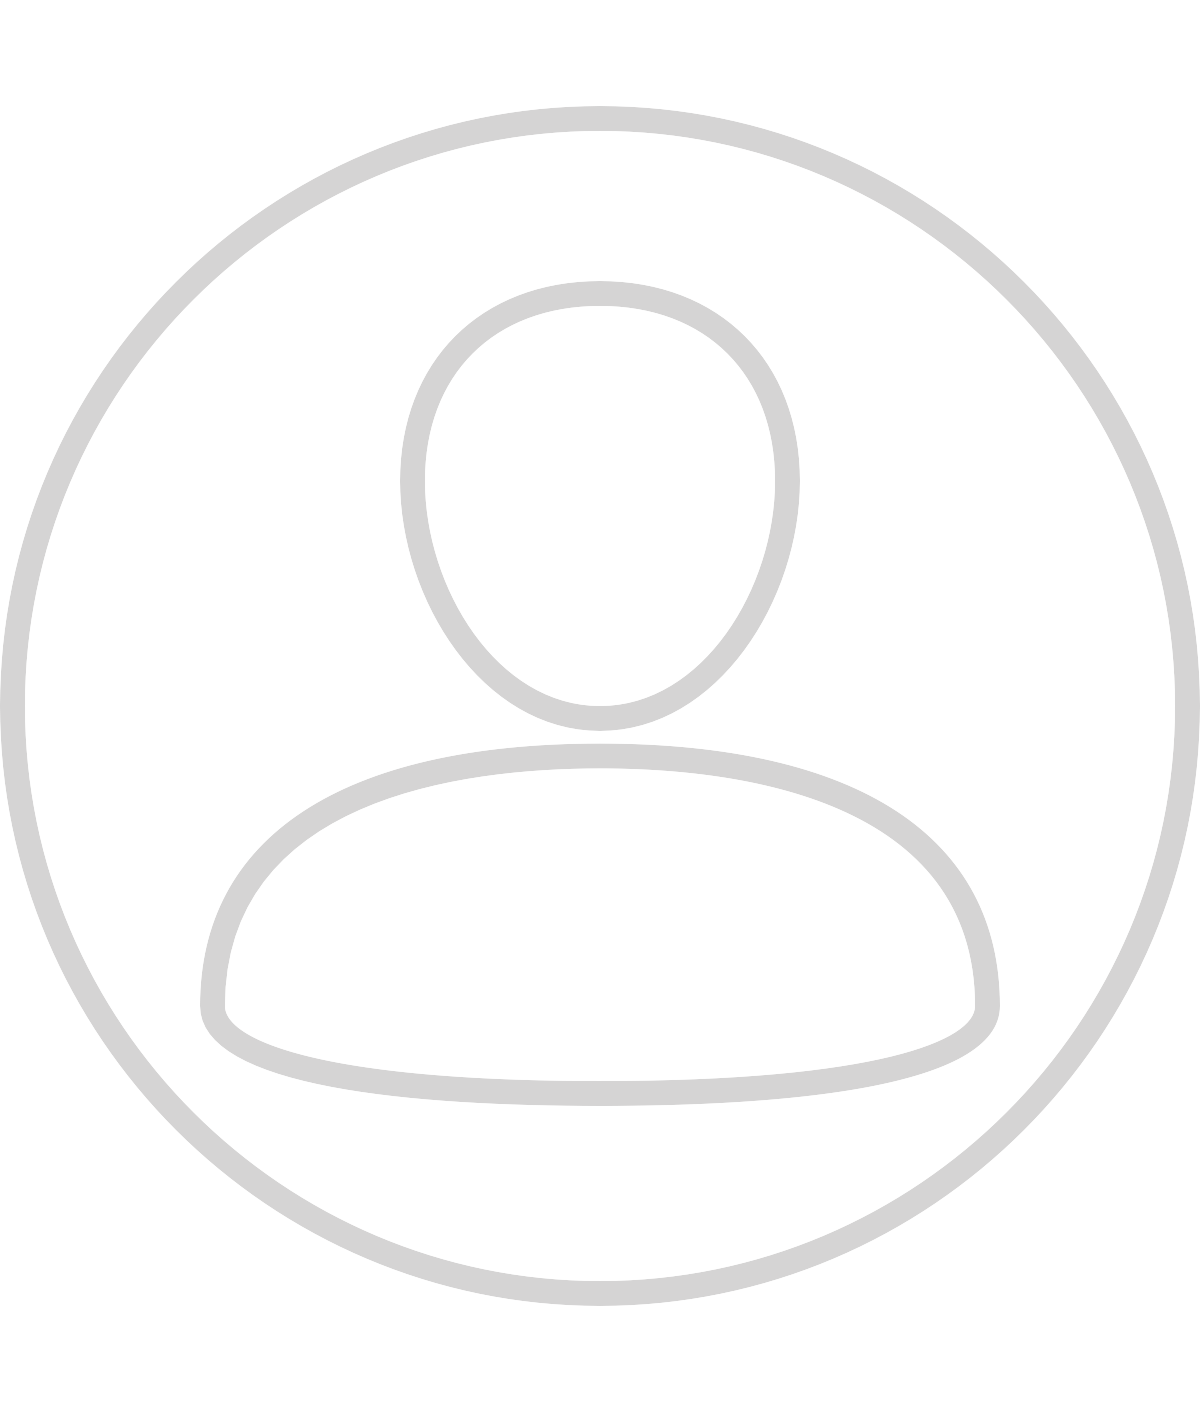 placeholder icon used in lieu of a photograph of Rene Okamura